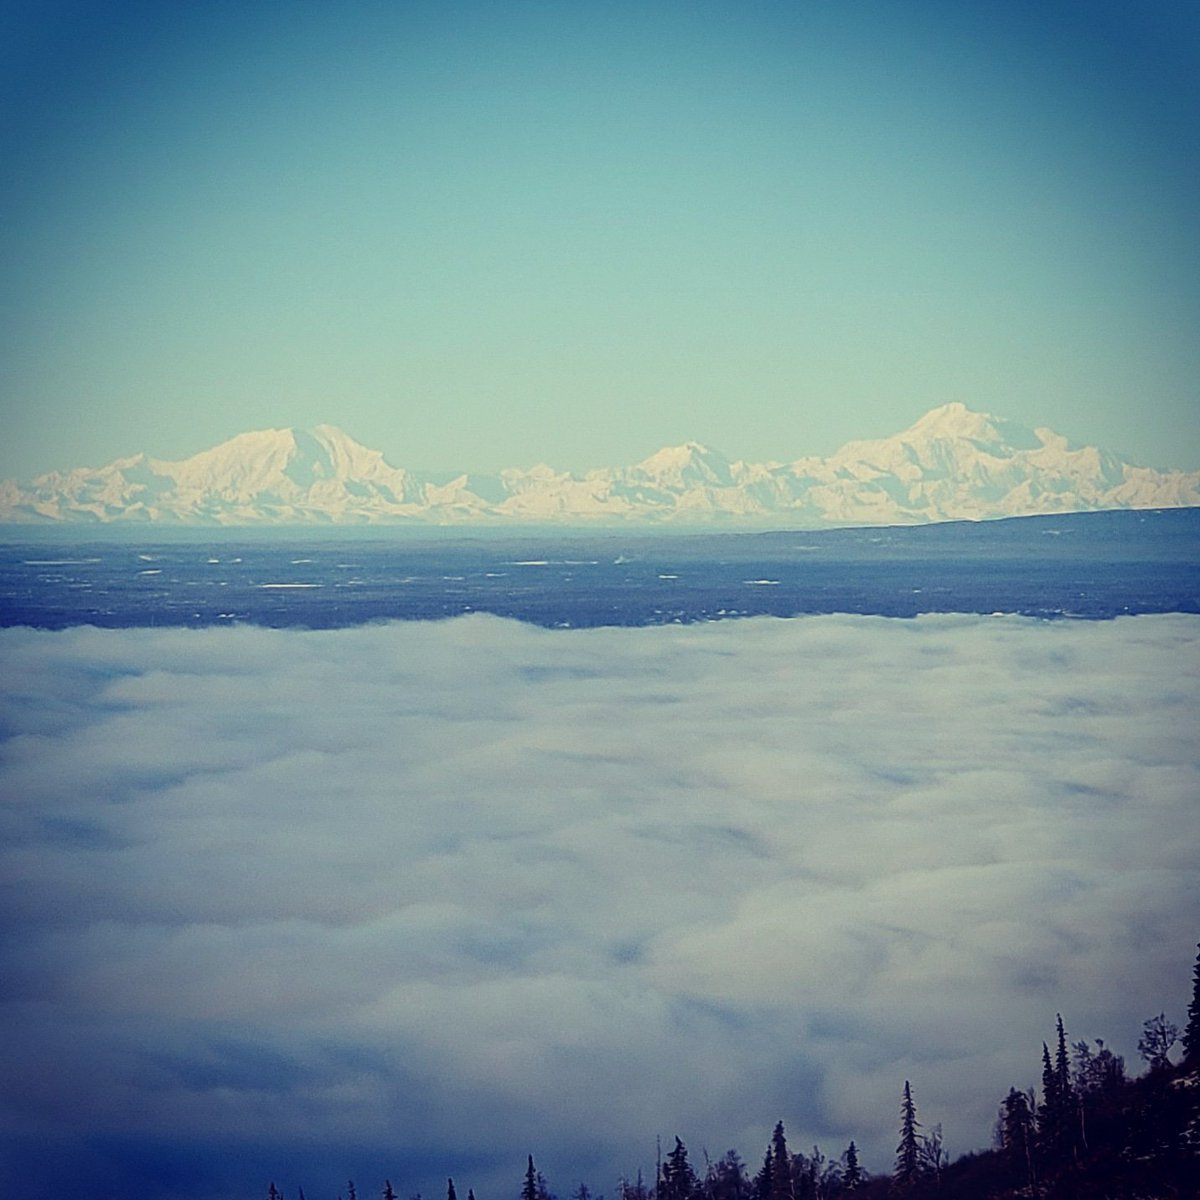 Denali, Hunter and Foraker looking almost ghostly across the Cook Inlet yesterday.   #ALASKA  #WritersCafe #adventureisoutthere #tuesdaymotivations